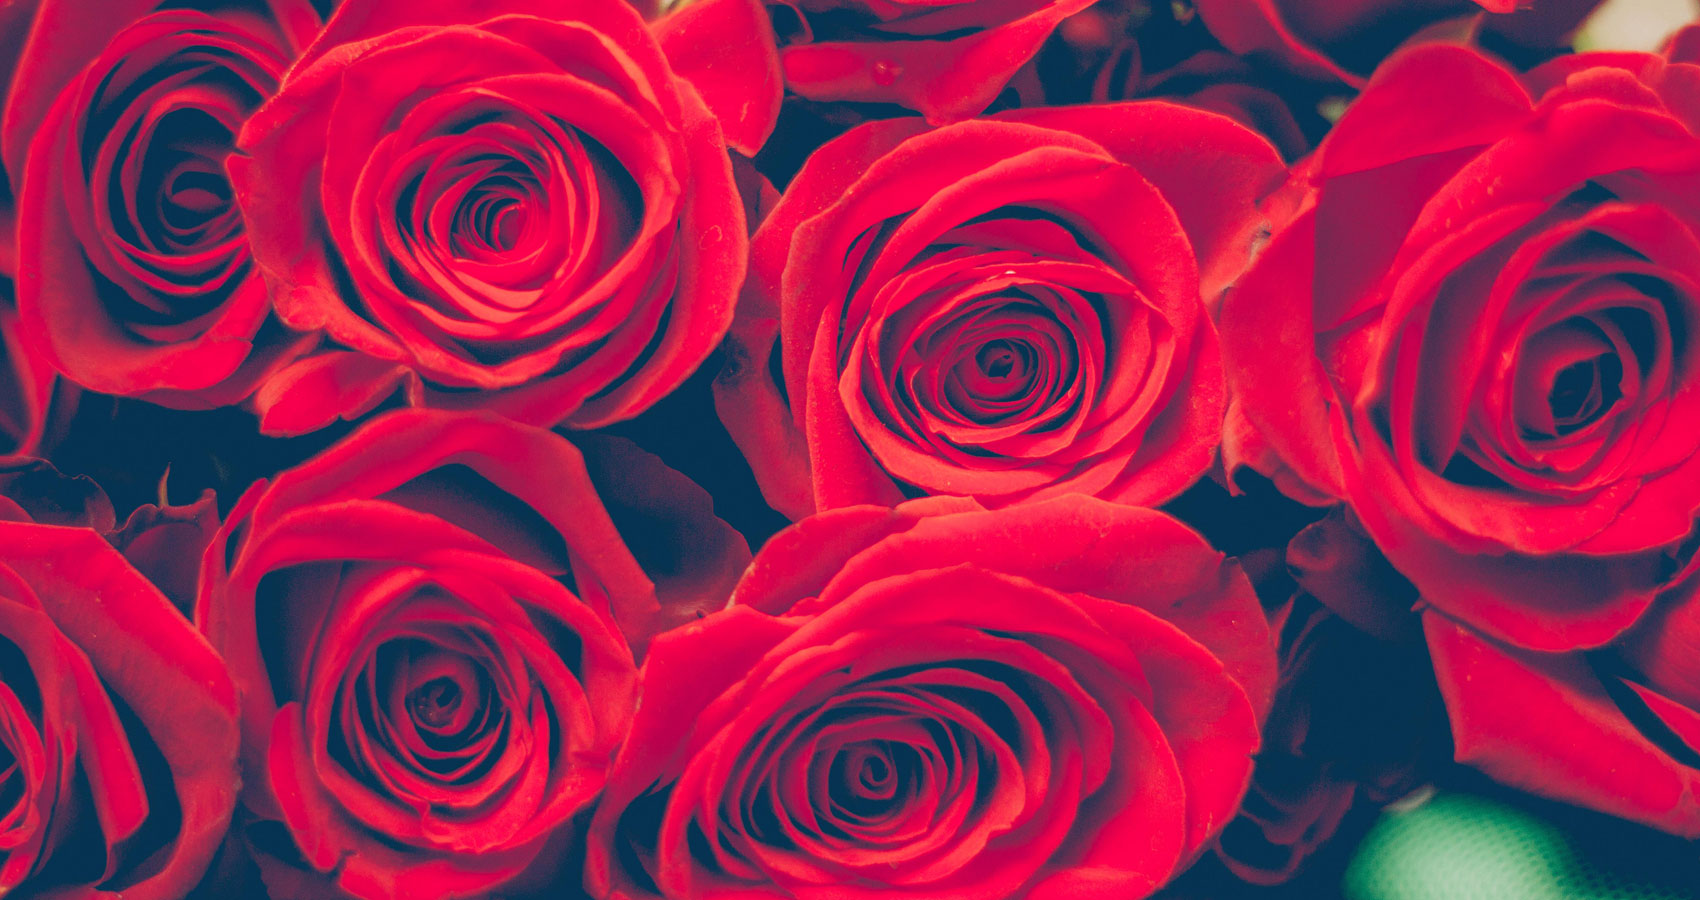 Garnet Roses Only Cry At Night, written by Fallen Engel at Spillwords.com